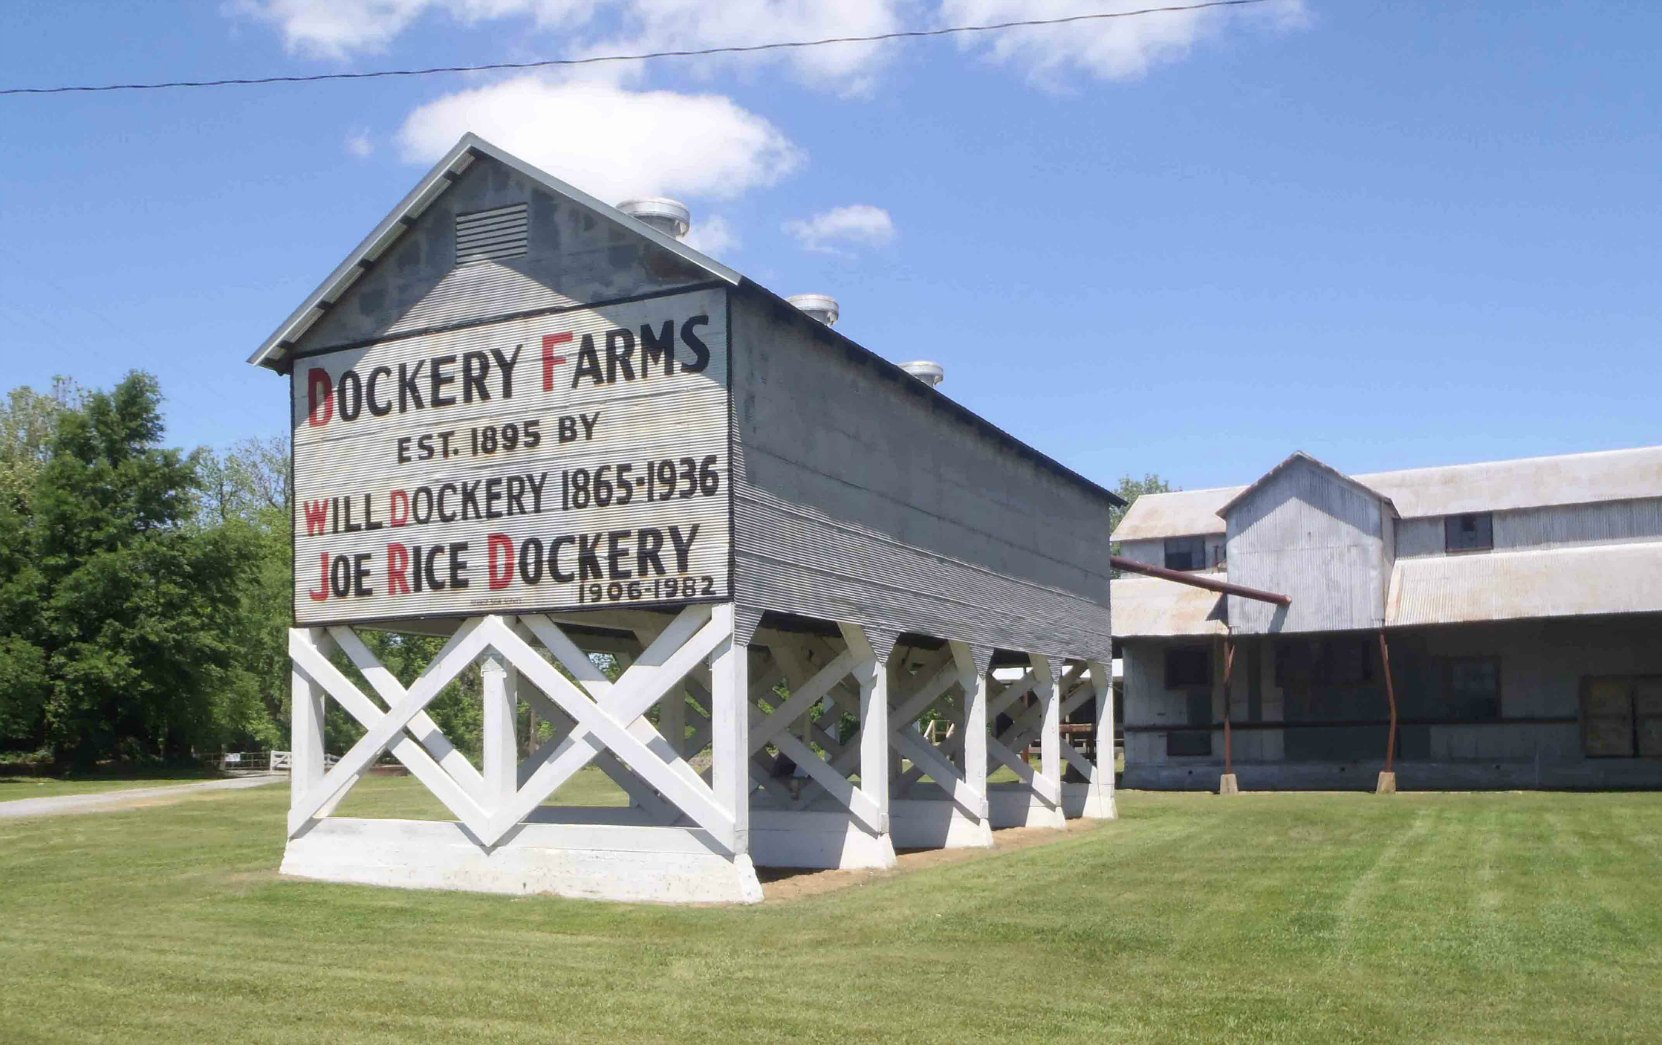 The Dockery Farms entrance sign, Highway 8, Sunflower County, Mississippi